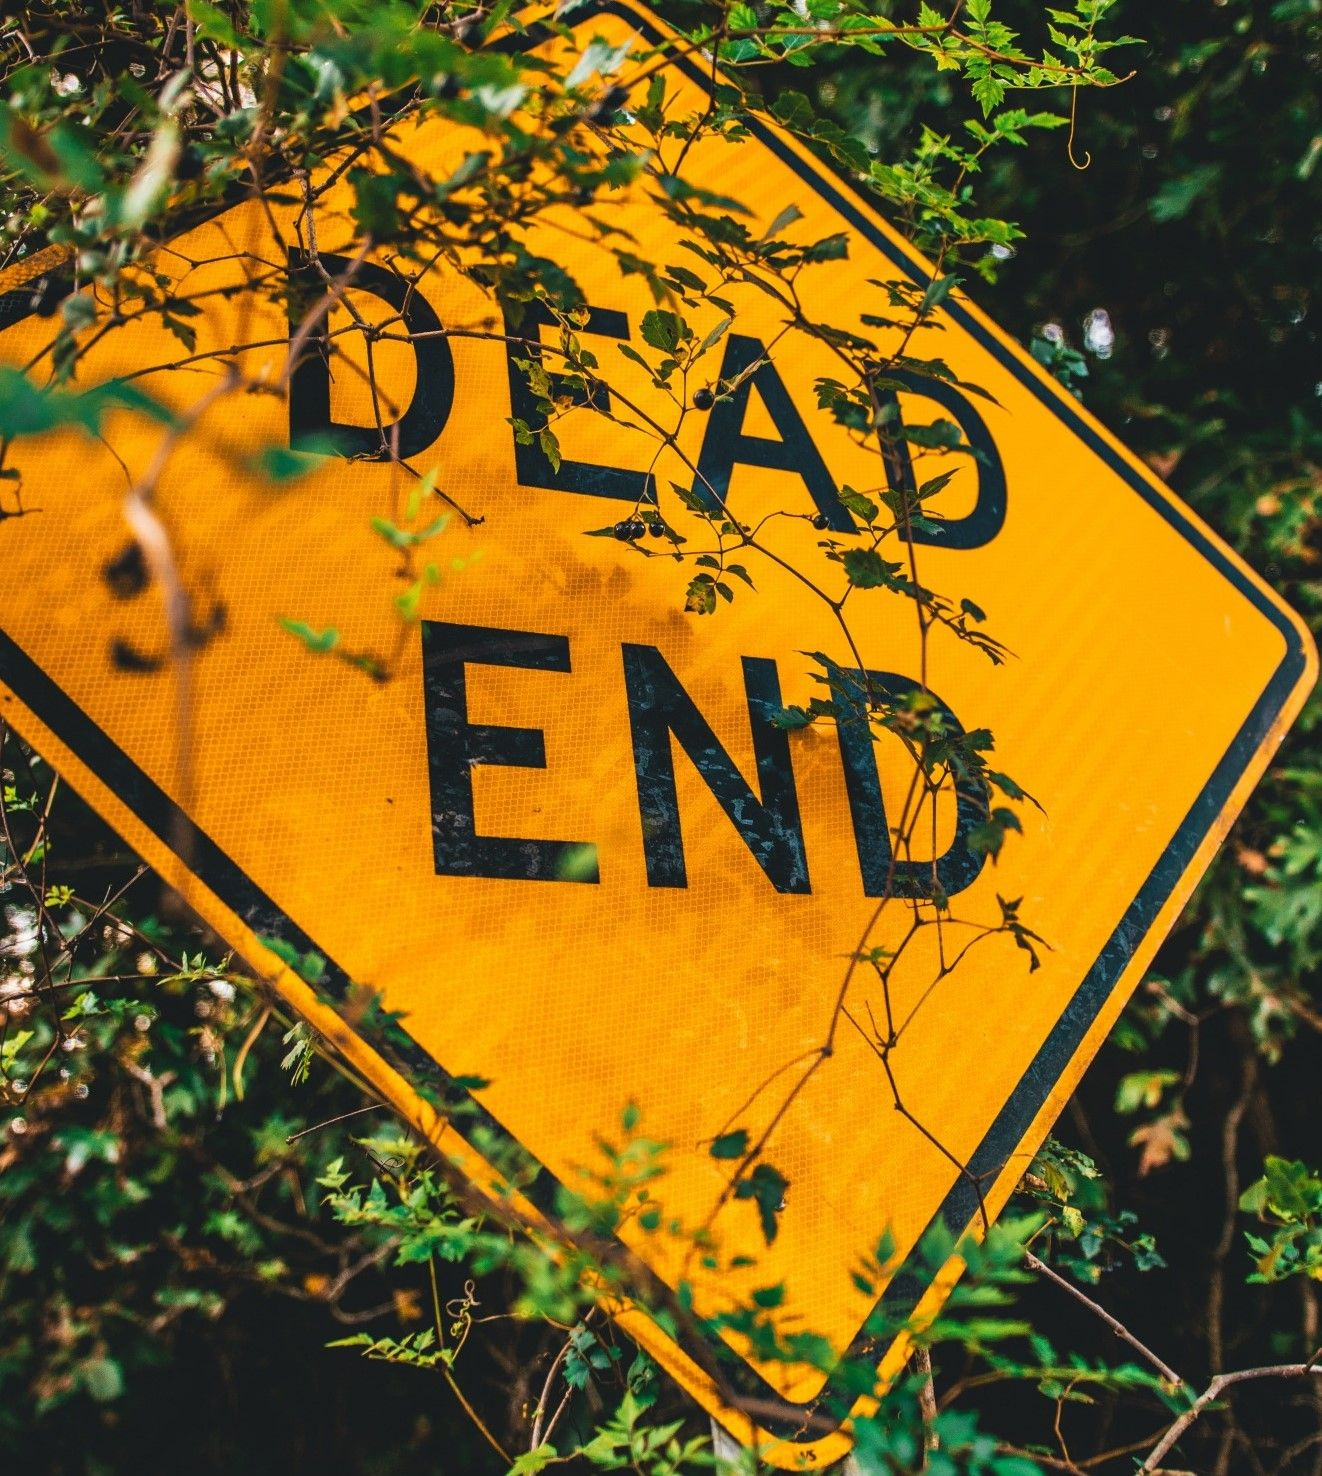 6-toxic-friendships-dead-end-sign